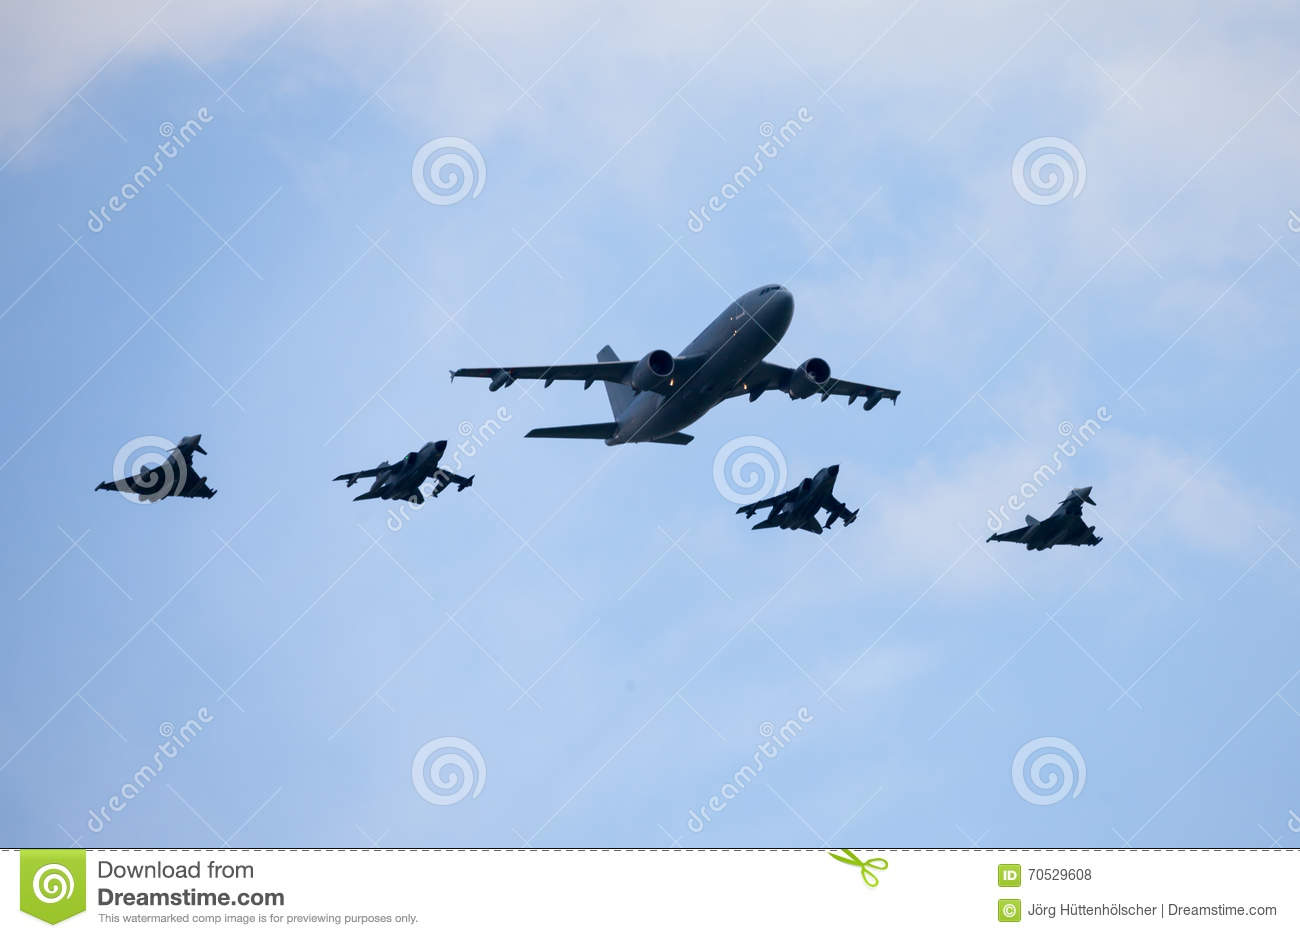 German military planes and attack jets on berlin air show Design attack berlin